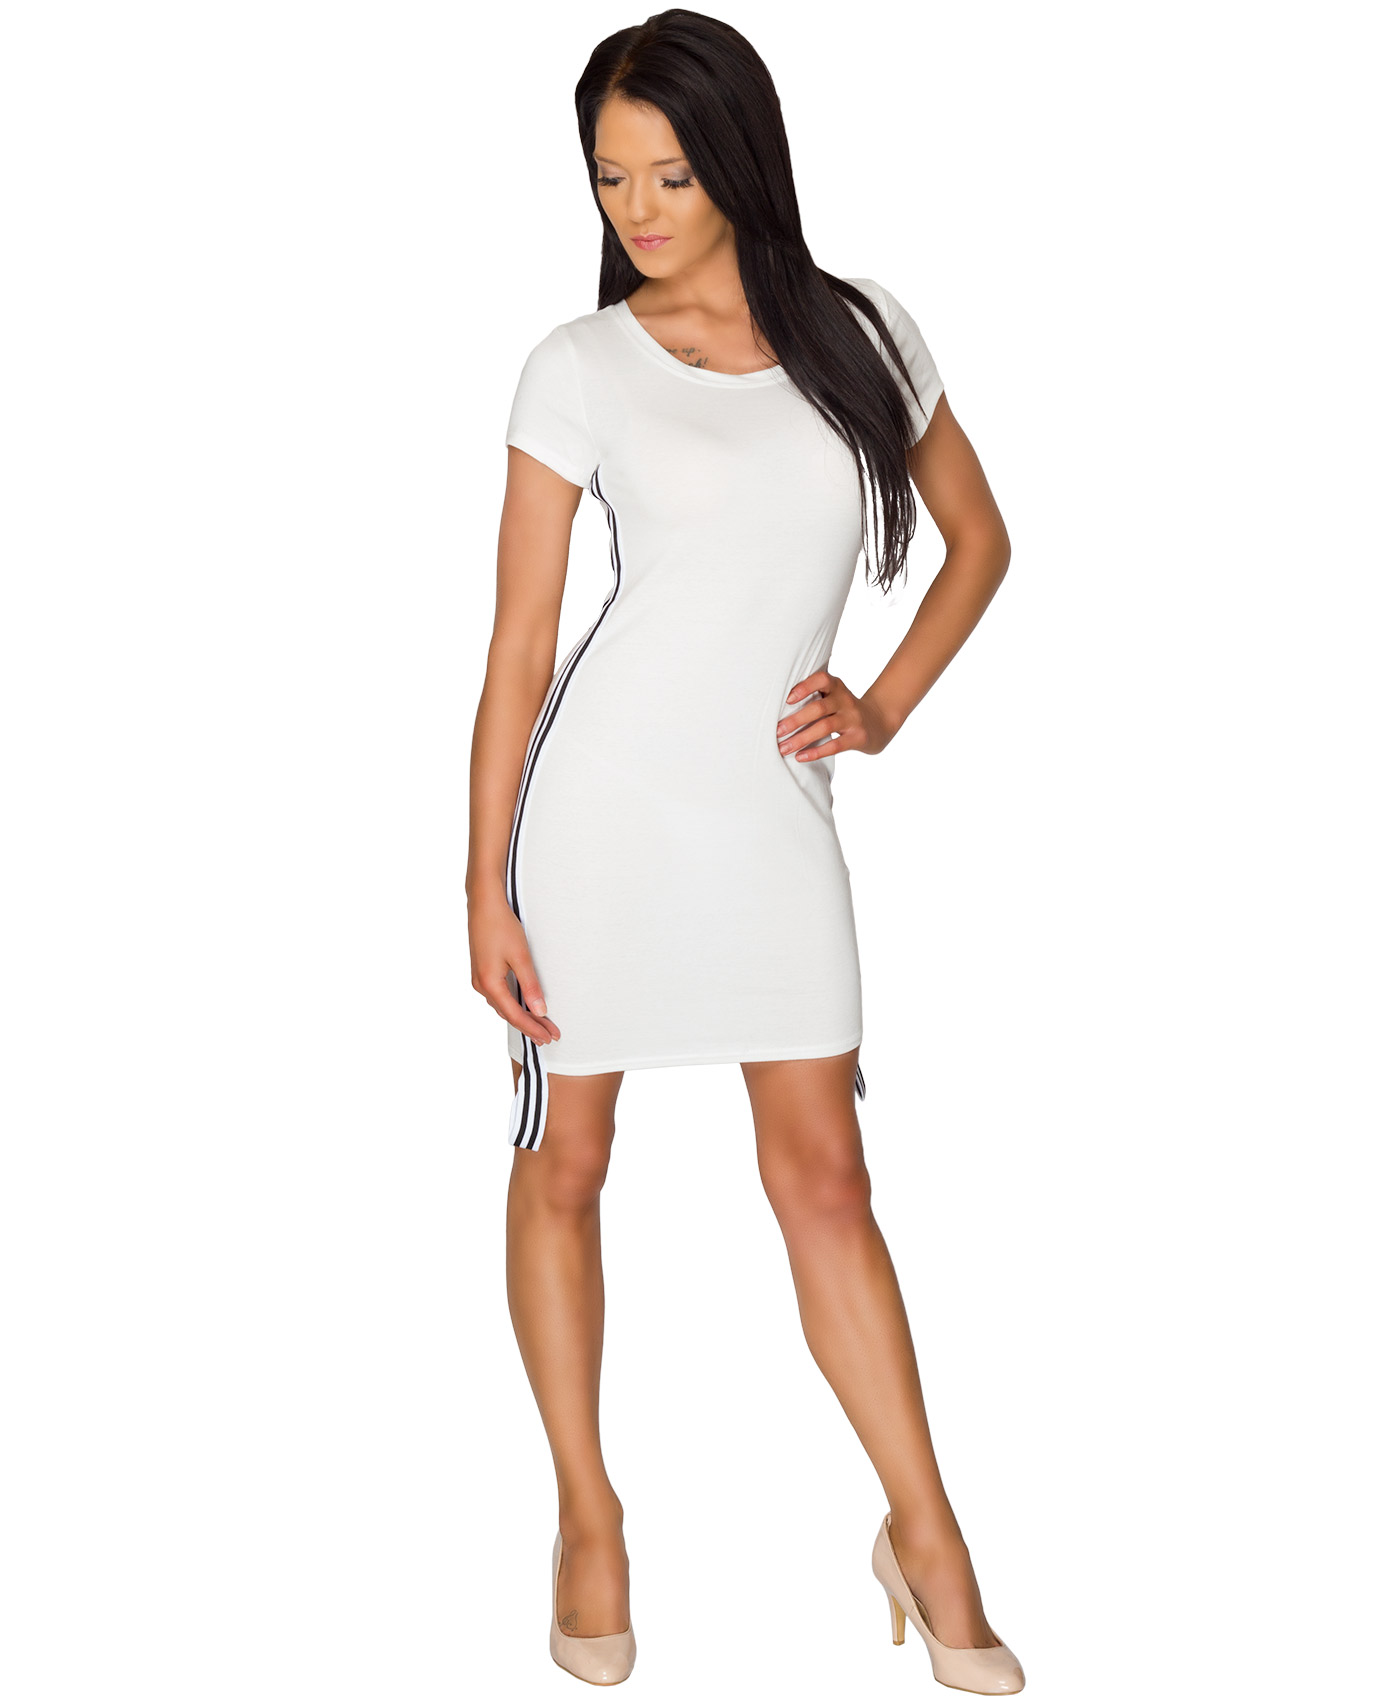 Catalogs bodycon what on beach a the is dress topshop natural